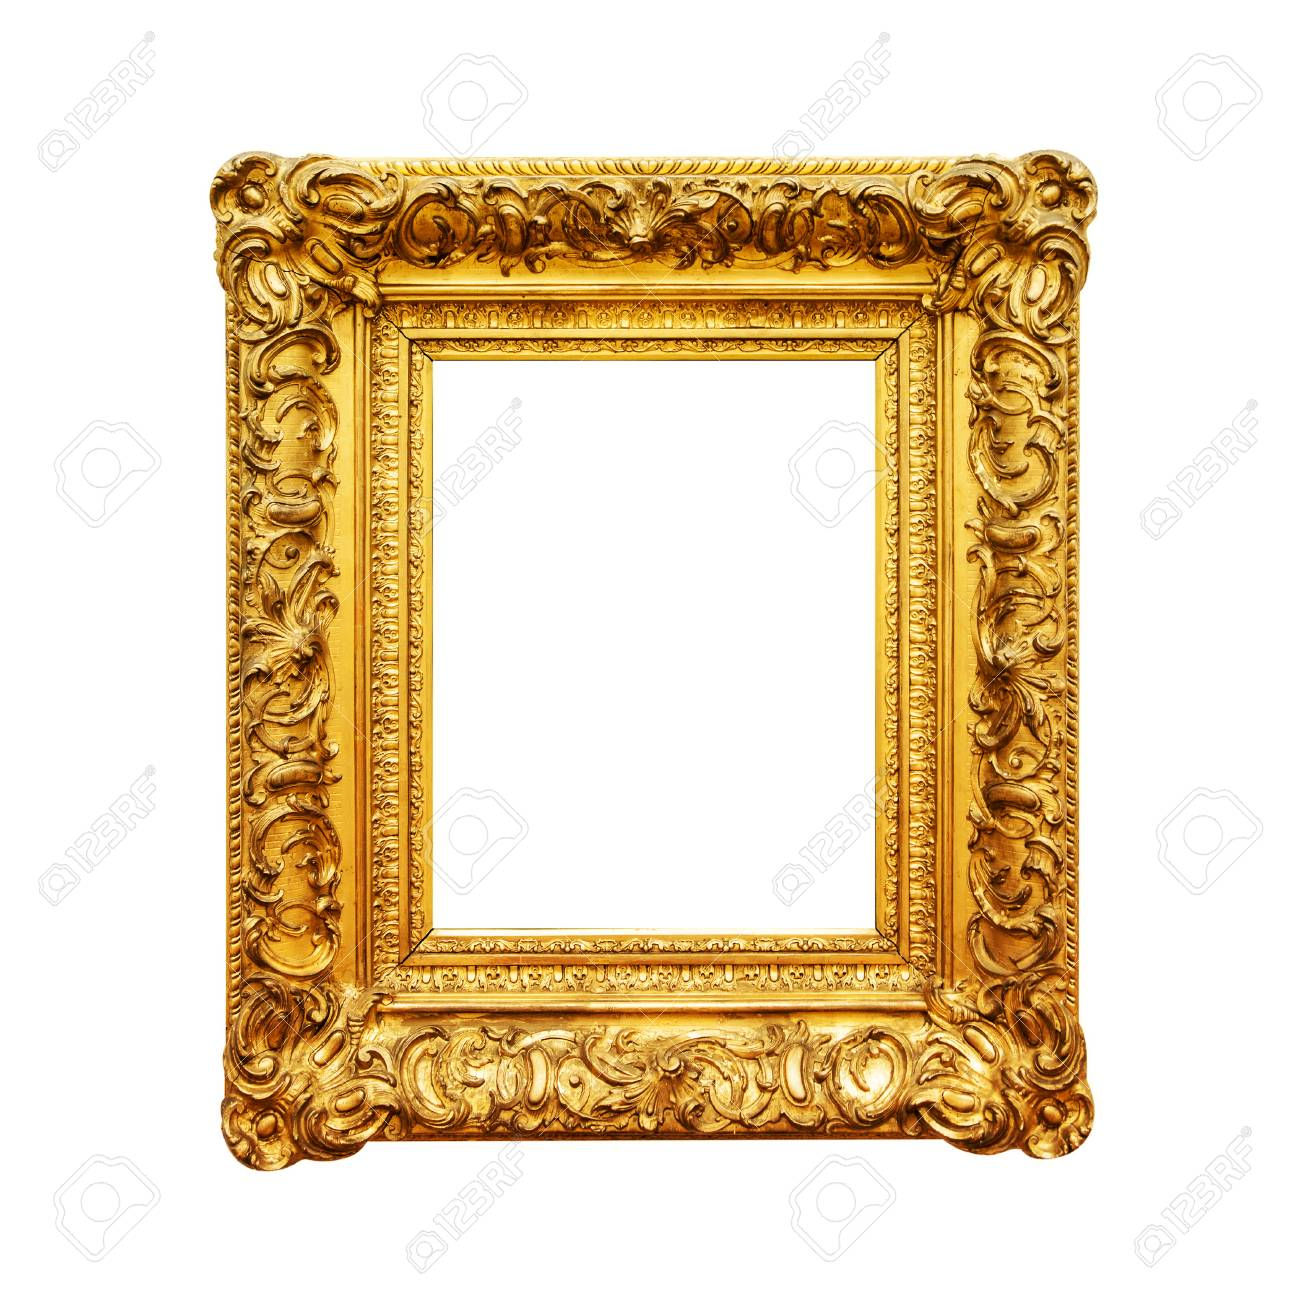 Antique Painting Gold Frame Isolated On White Background Stock Photo